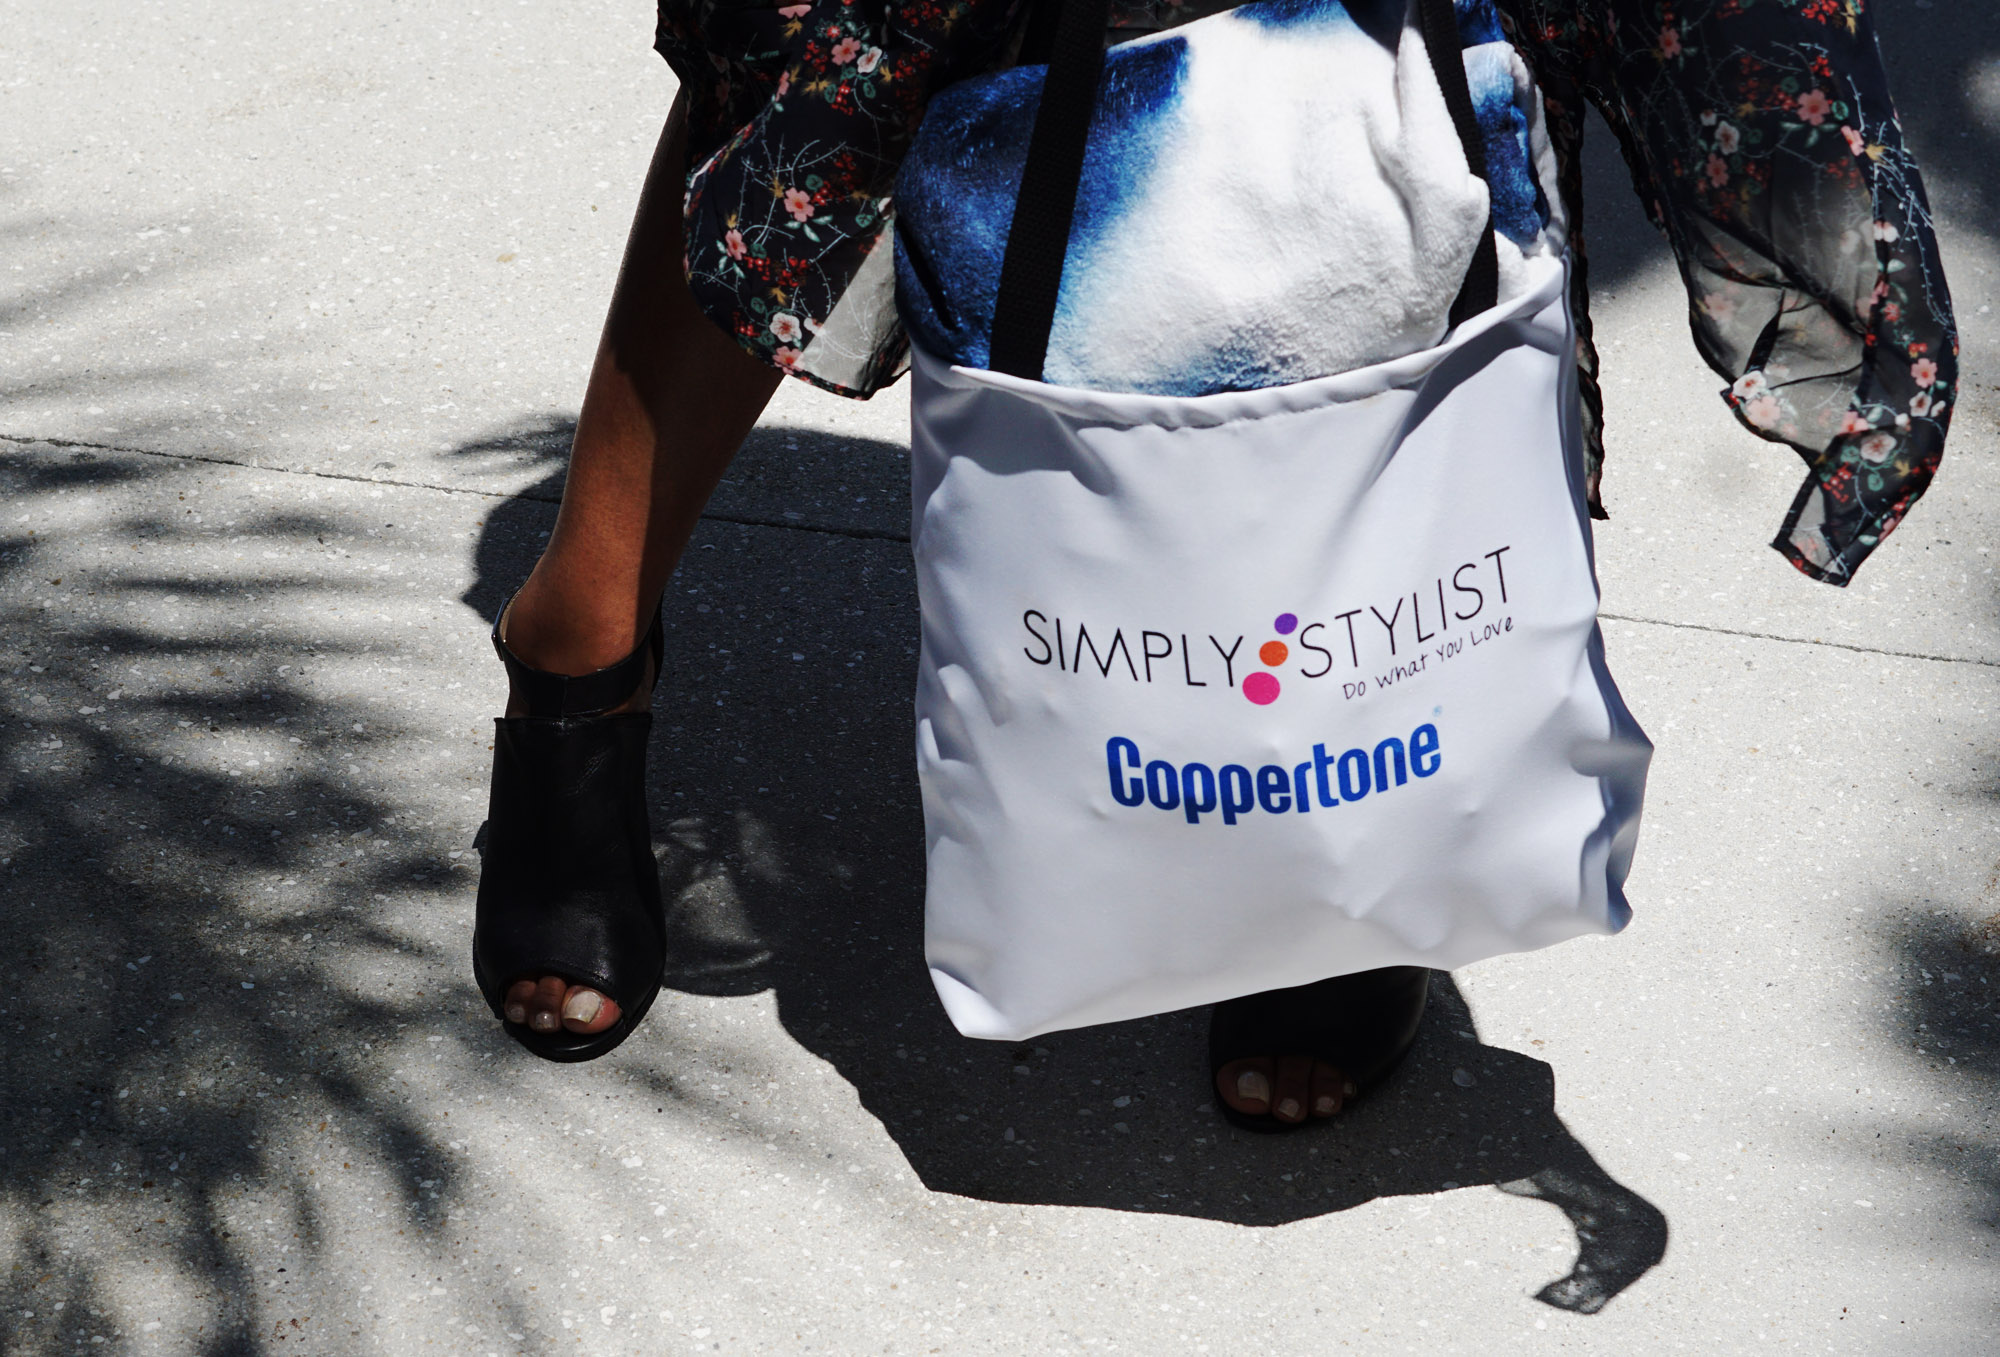 Coppertone Simply Stylist Blogger Event